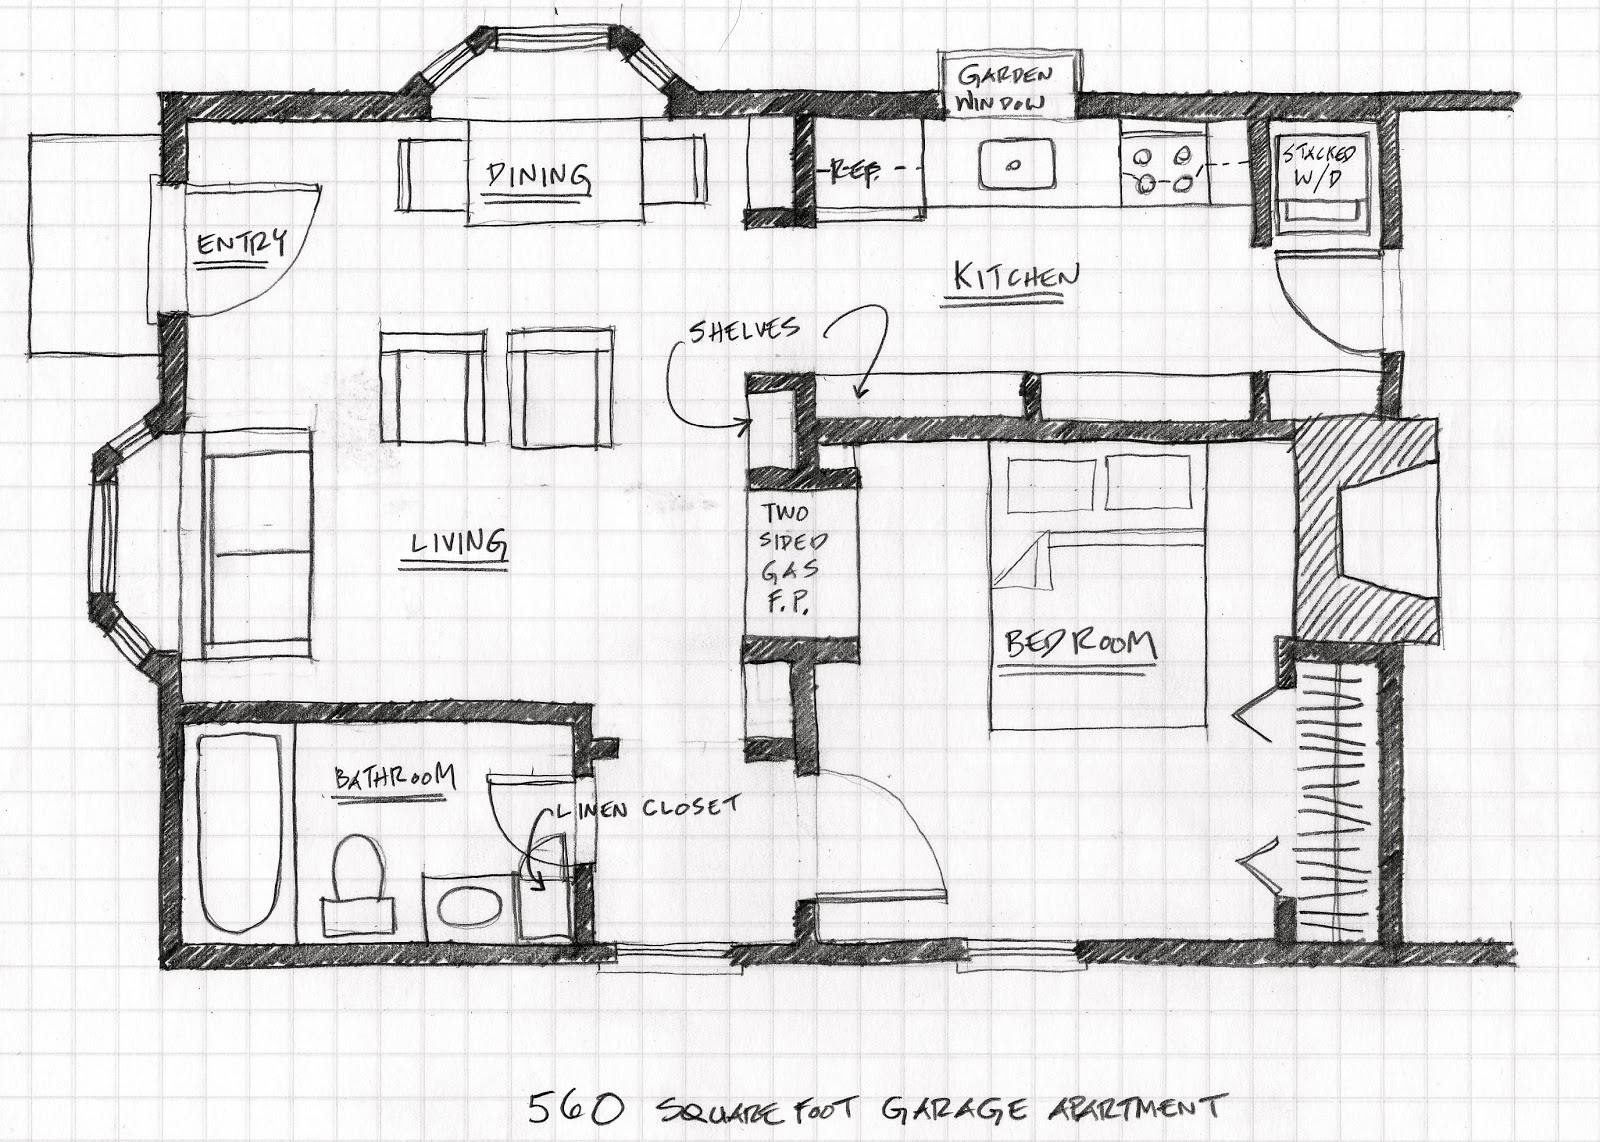 Small Scale Homes Floor Plans for Garage to Apartment Conversion – Garage Floor Plan Ideas